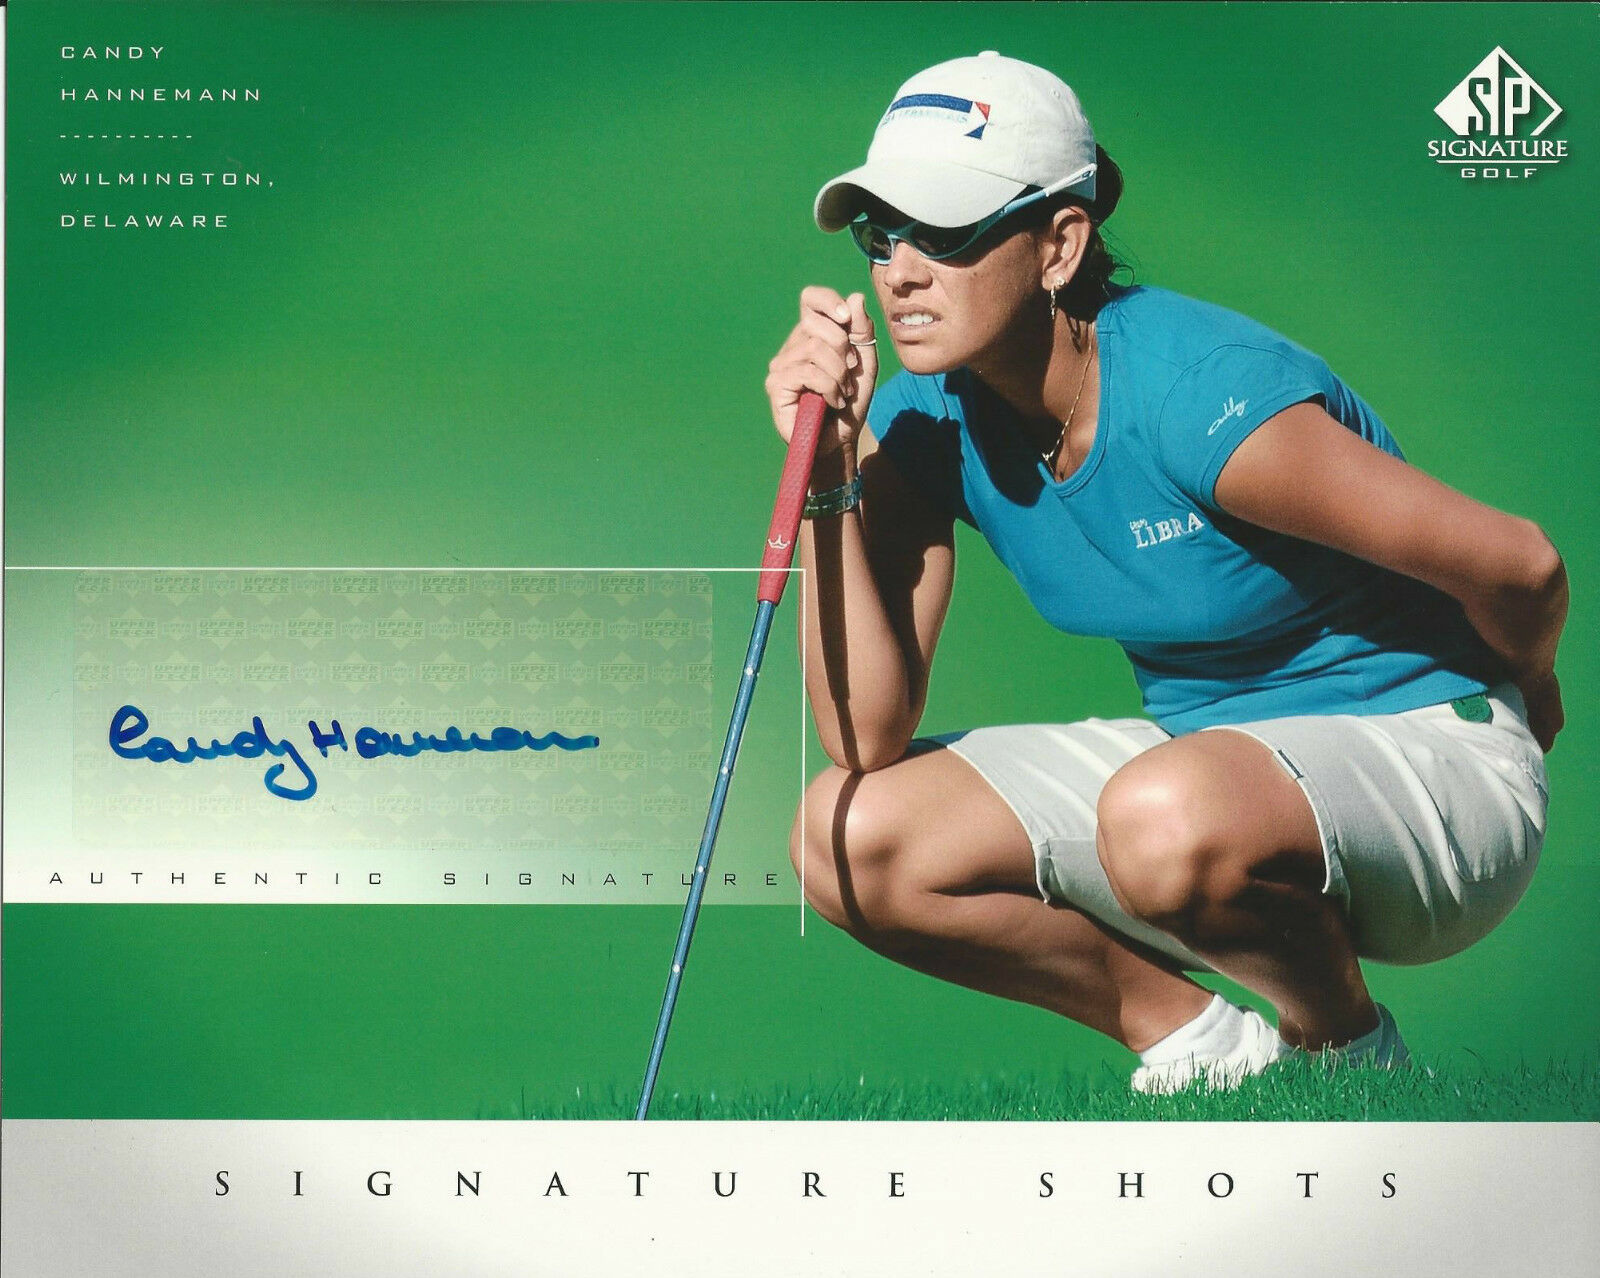 Candy Hannemann Signed SP Signature Shots 8x10 Photo